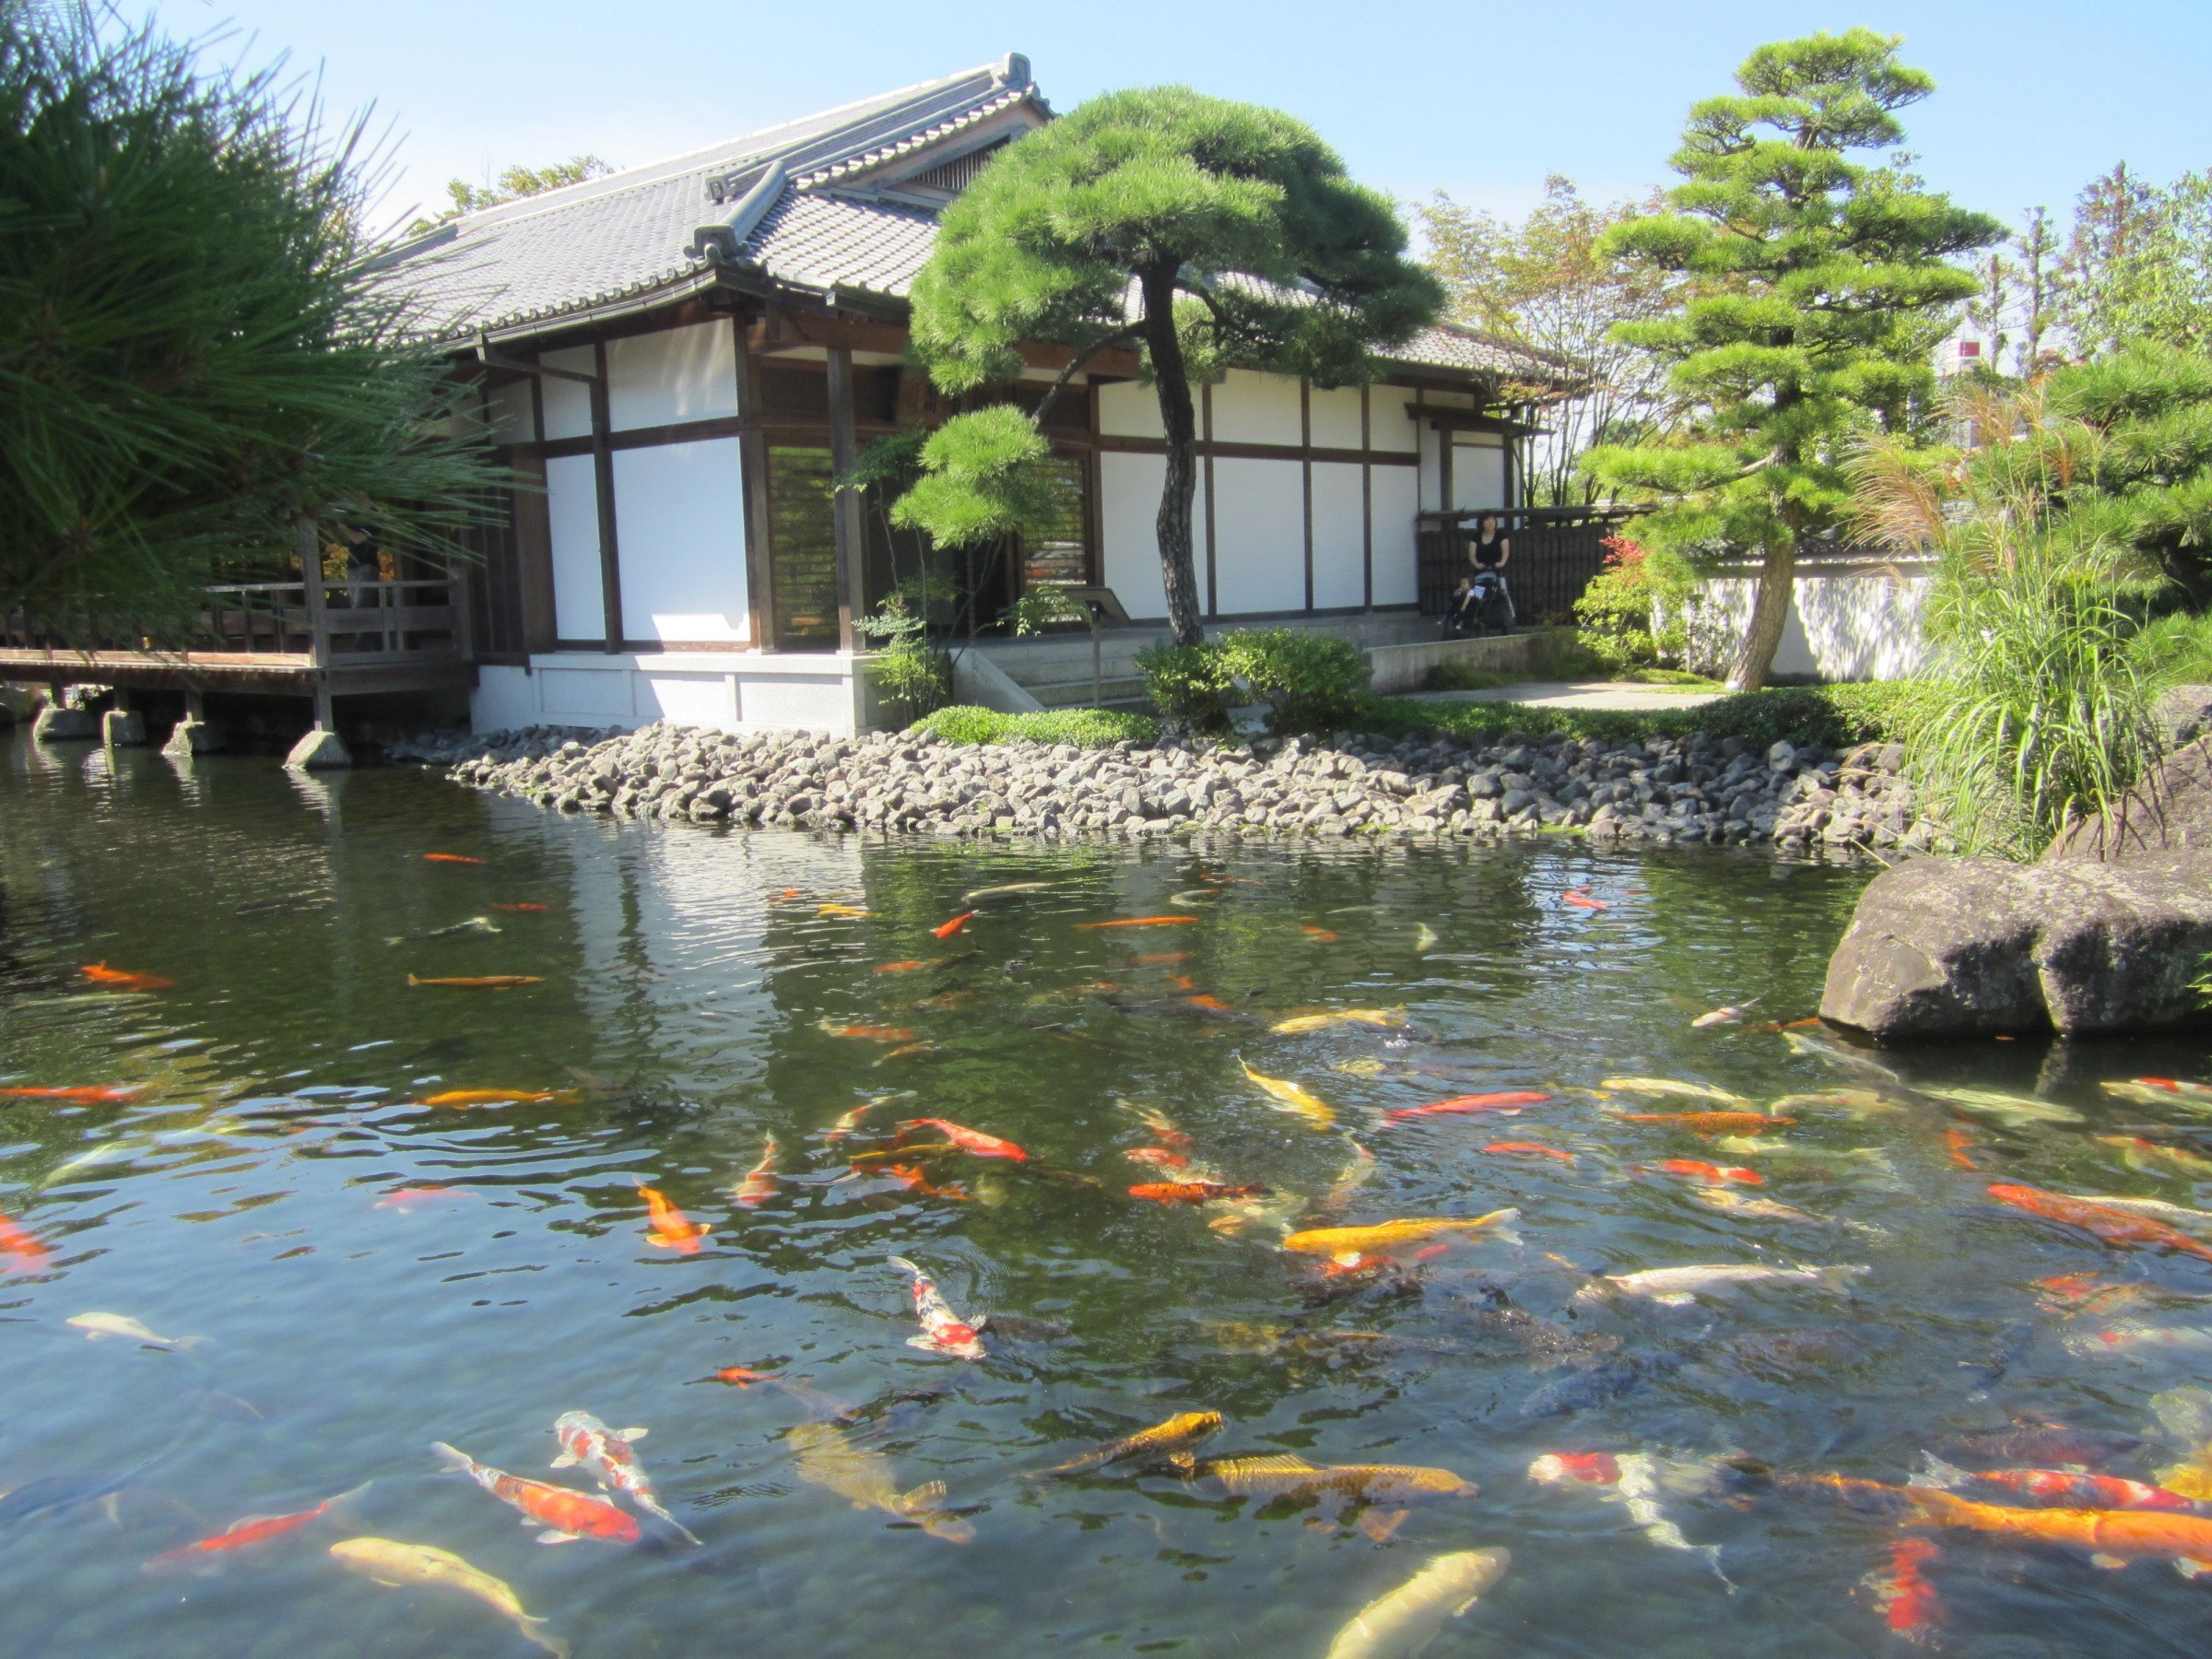 Himeji castle revisited insidejapan blog for Carp pond design